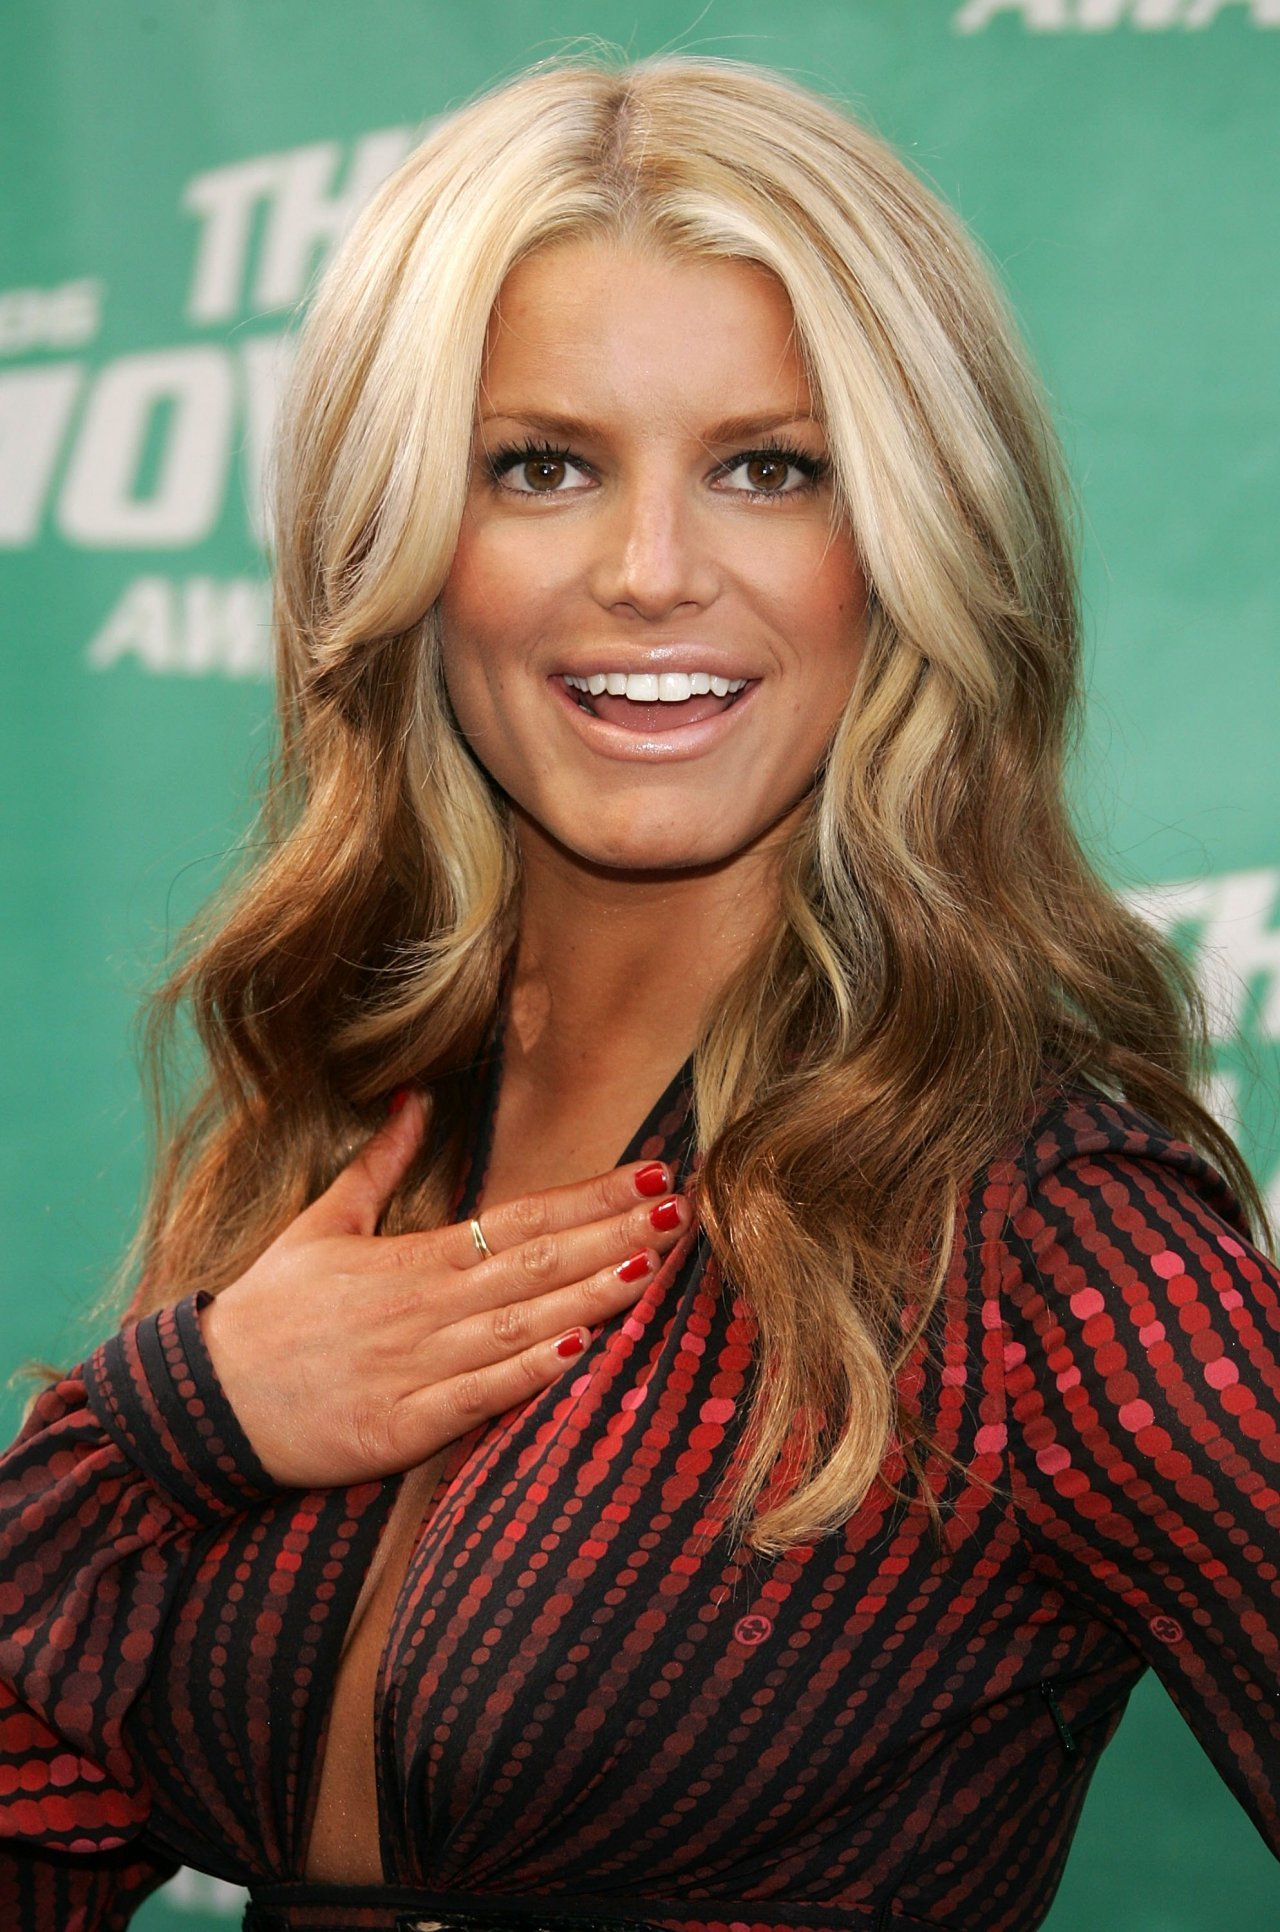 Lovely Jessica Photo Jessica Simpson Photo 16920509